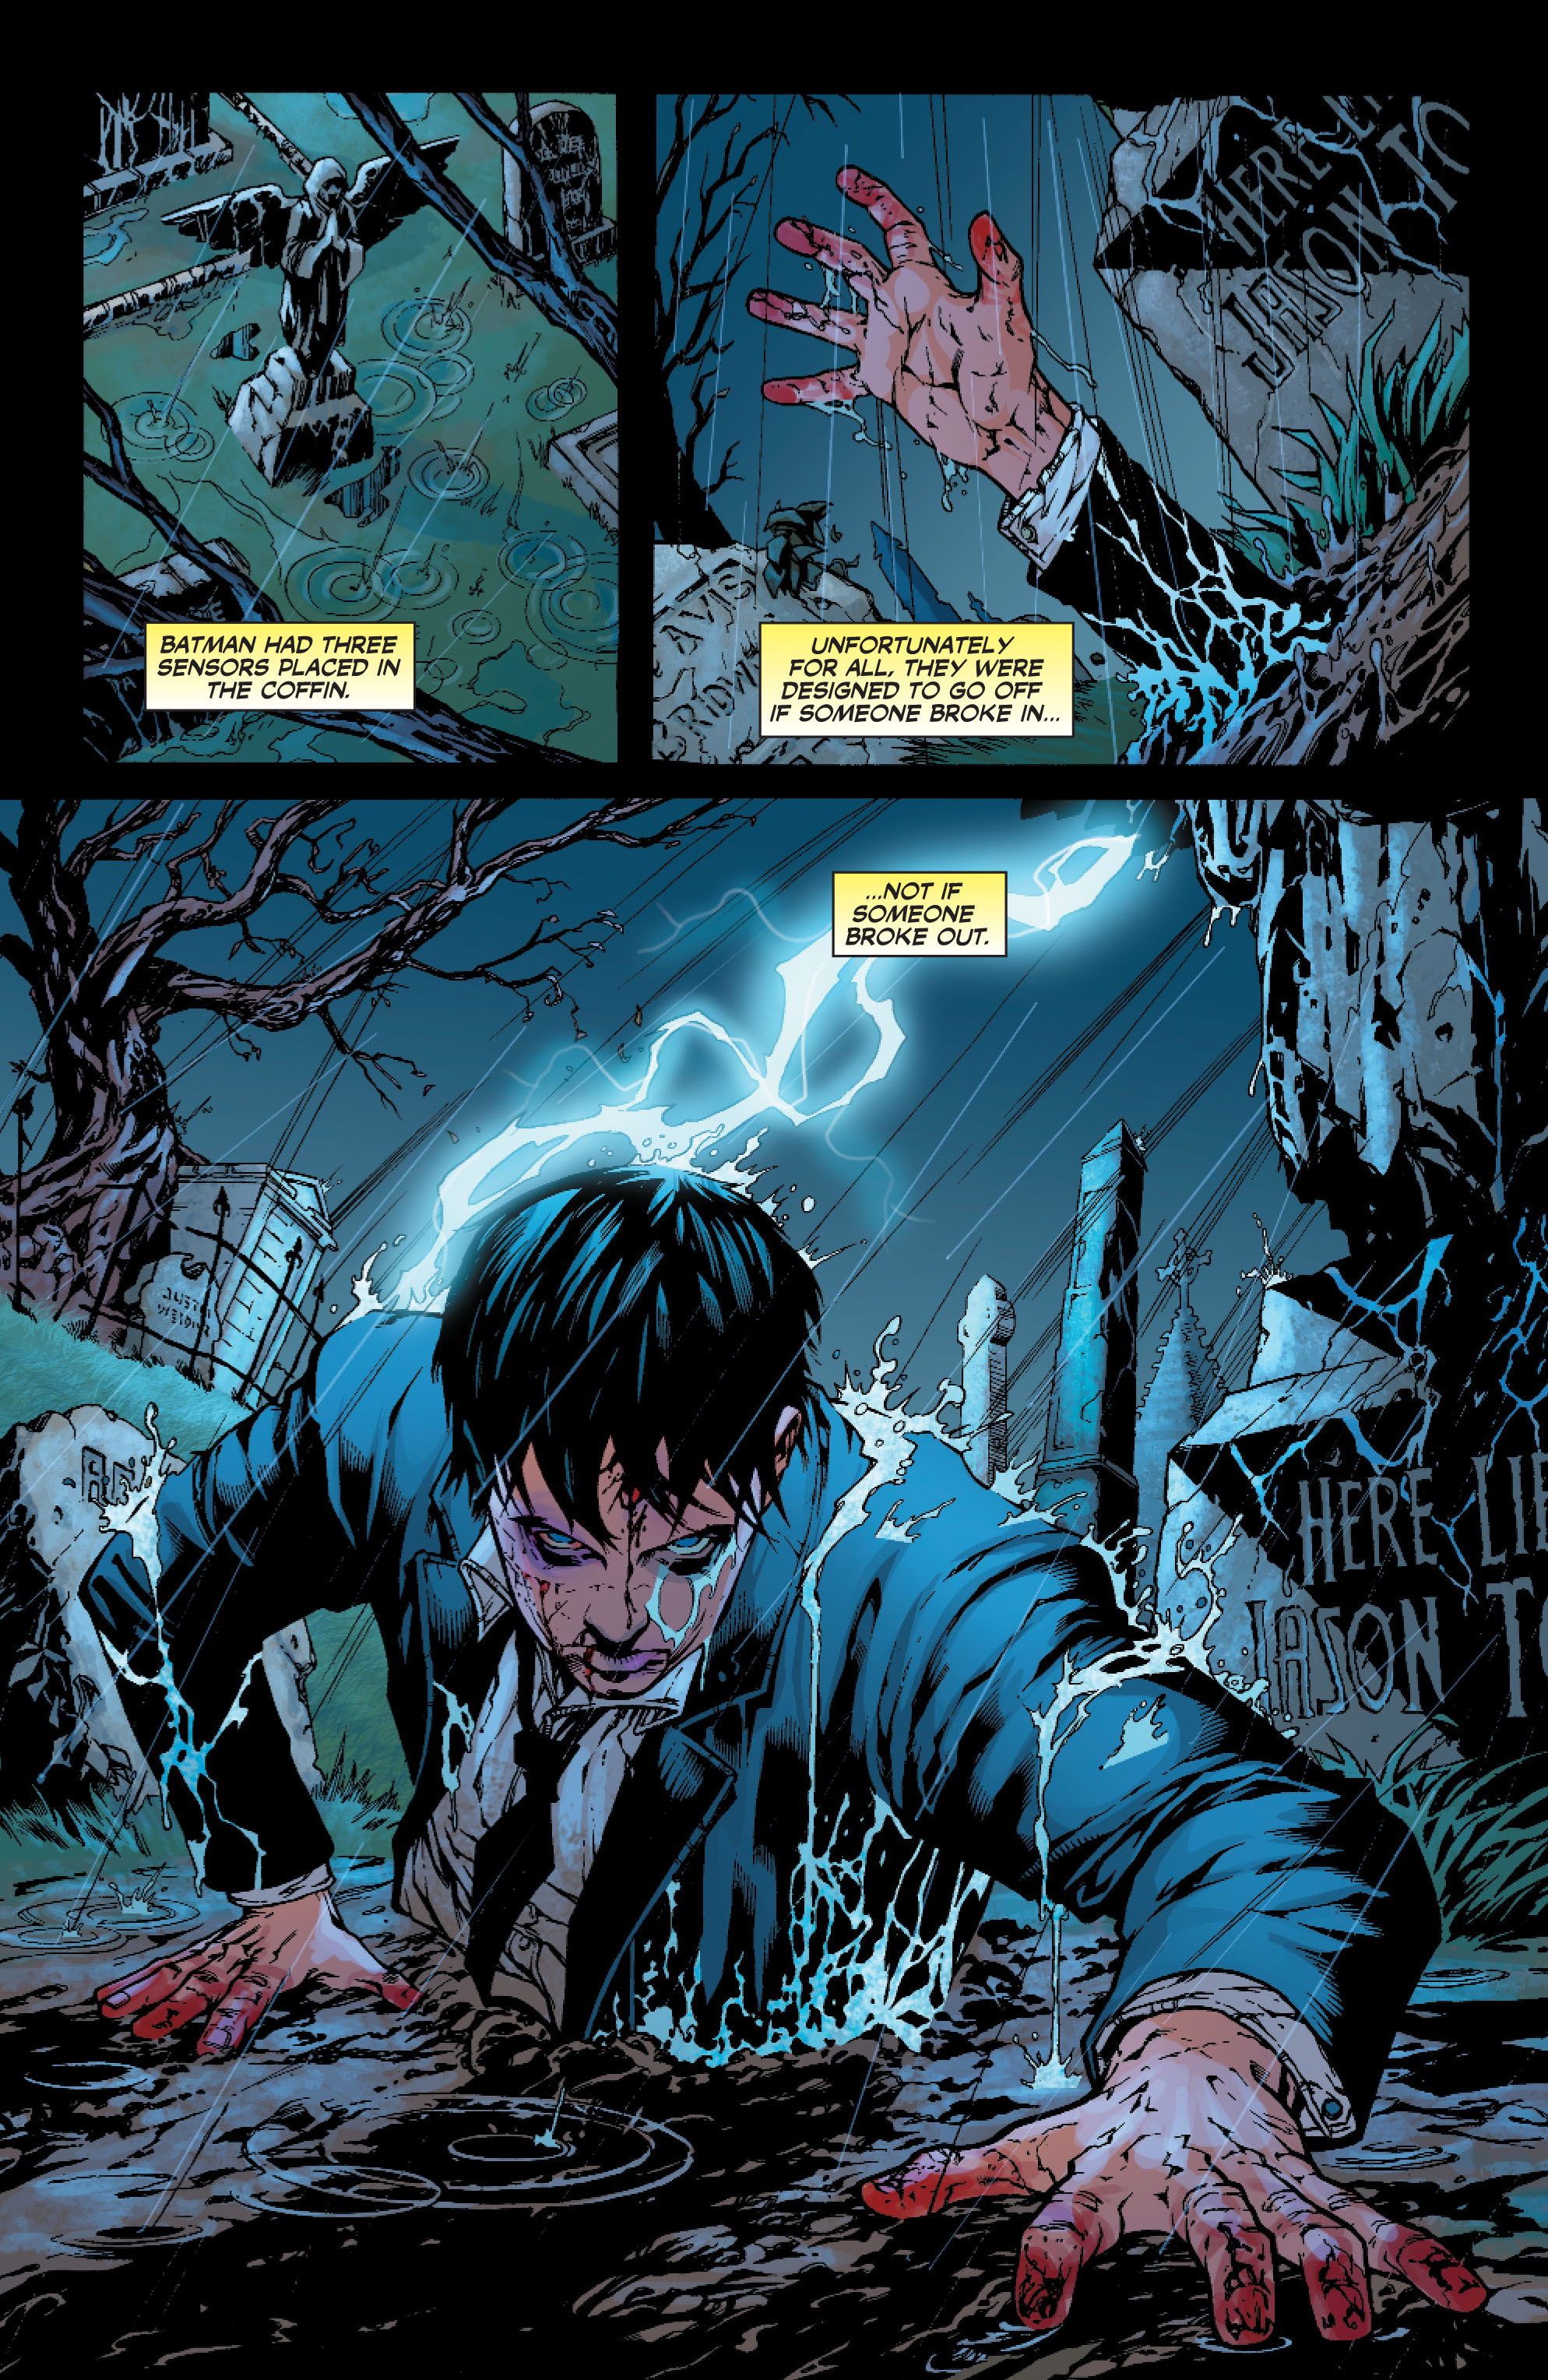 Read online Batman: Under The Red Hood comic -  Issue # Full - 331